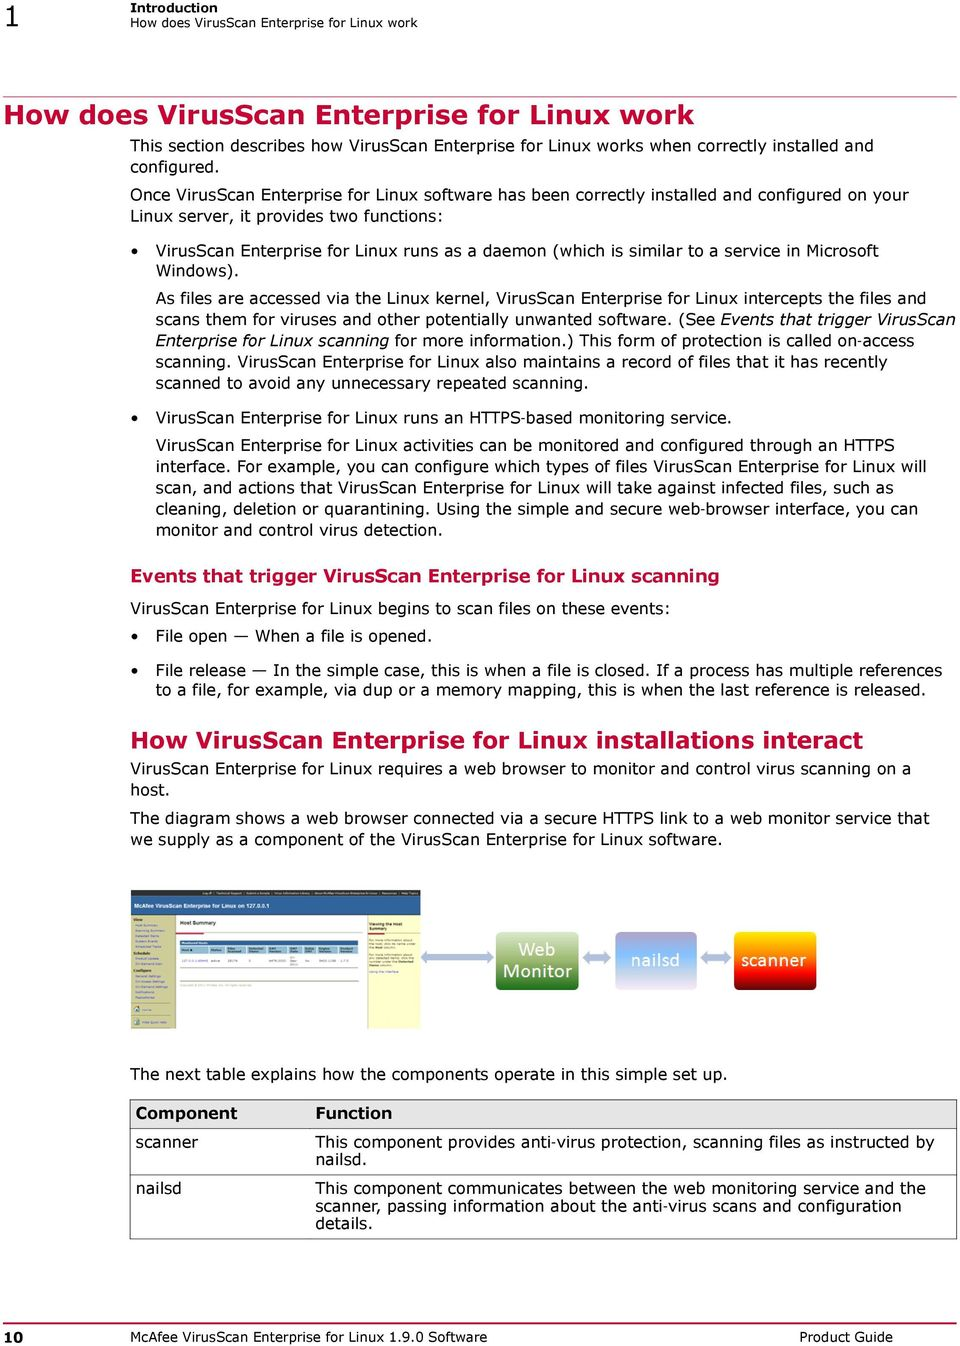 an introduction to the document and product mcafee virusscan for windows95 This release guide introduces mcafee virusscan® enterprise software version  70, and describes  product introduction and features, detailed instructions for.